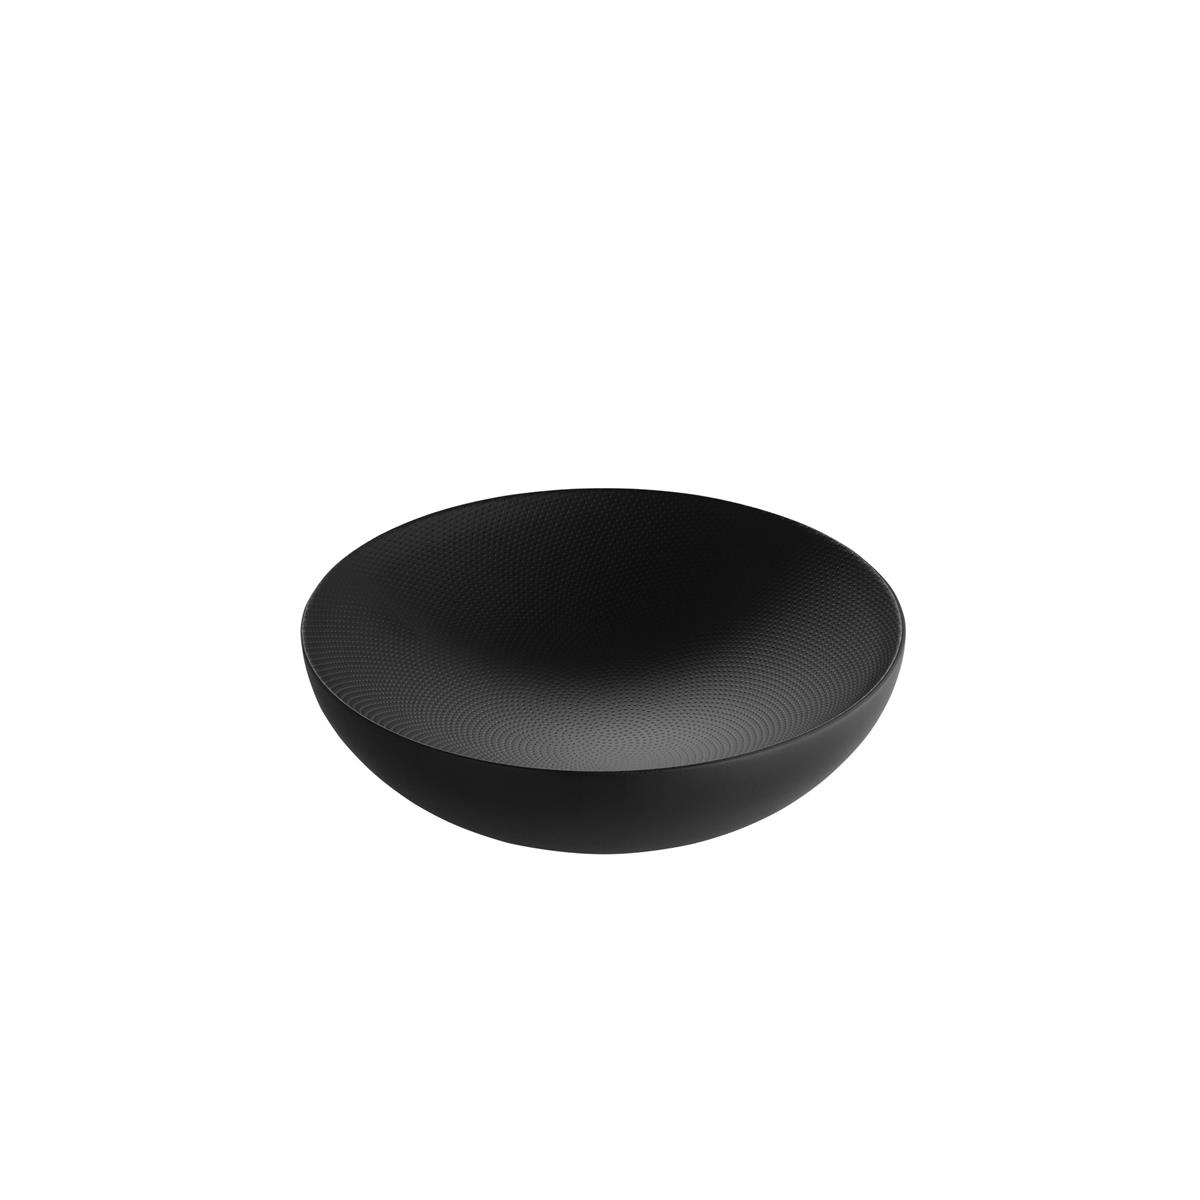 Alessi-Double Double-walled bowl in colored steel and resin, black with relief decoration